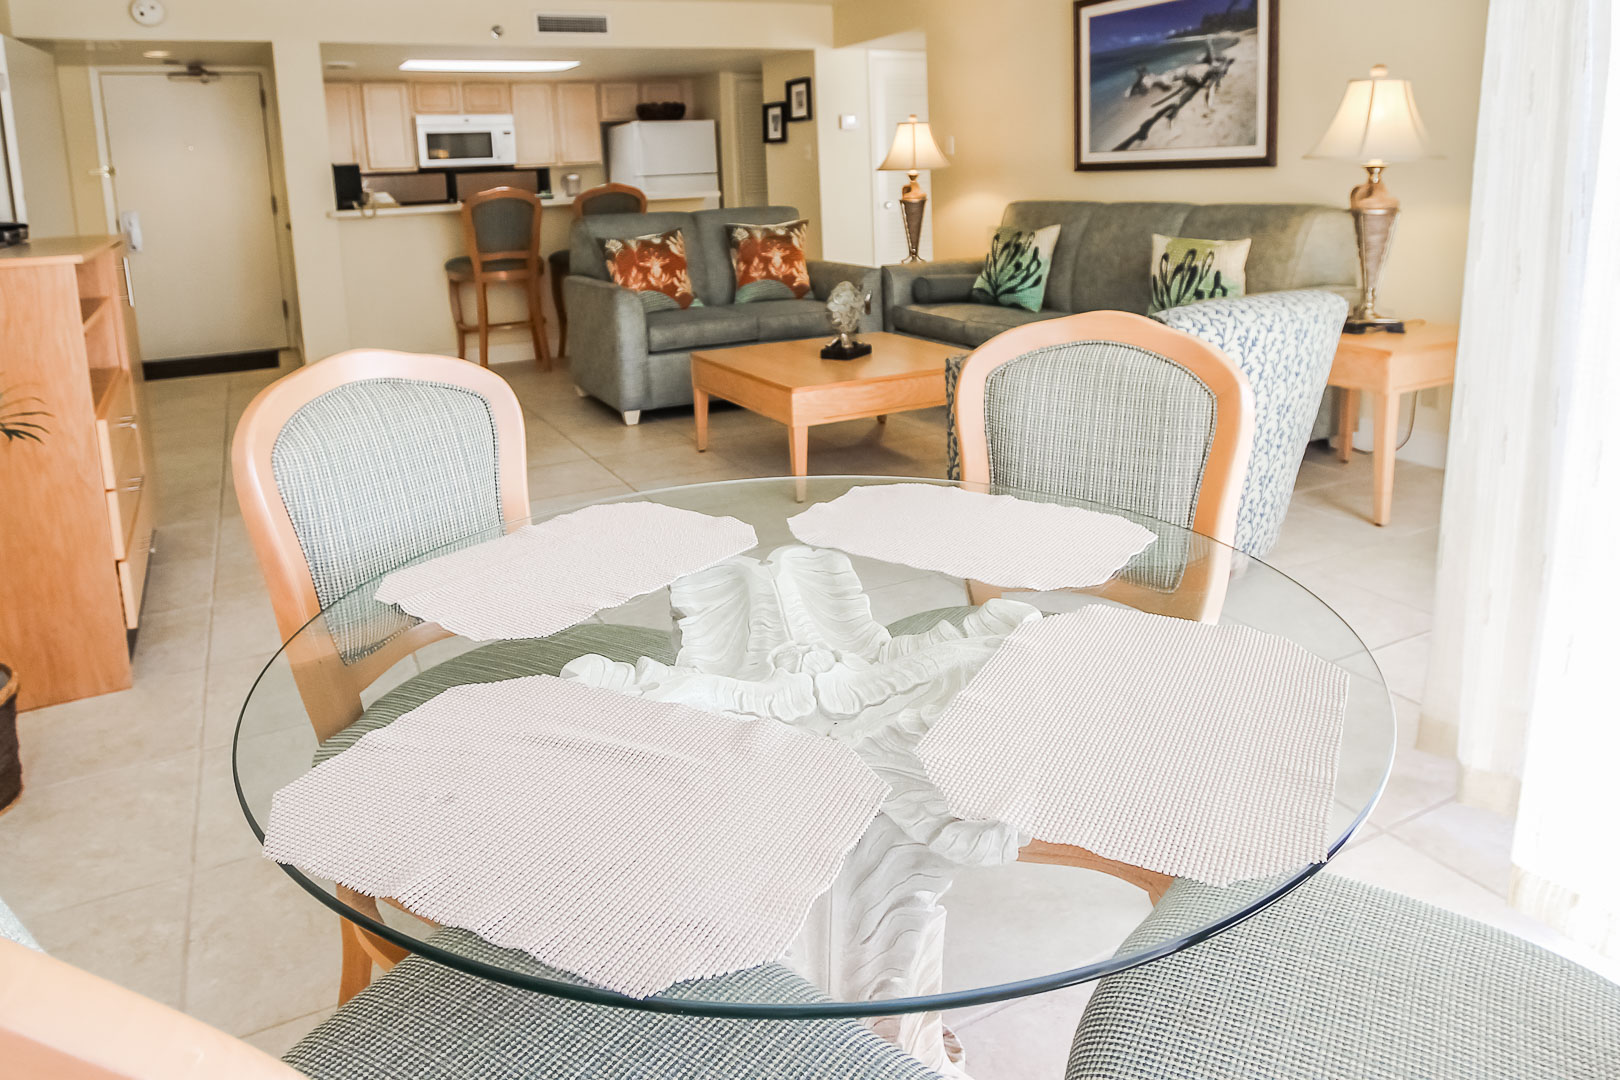 A beautiful dining room area at VRI's Royale Beach Tennis Club in Texas.